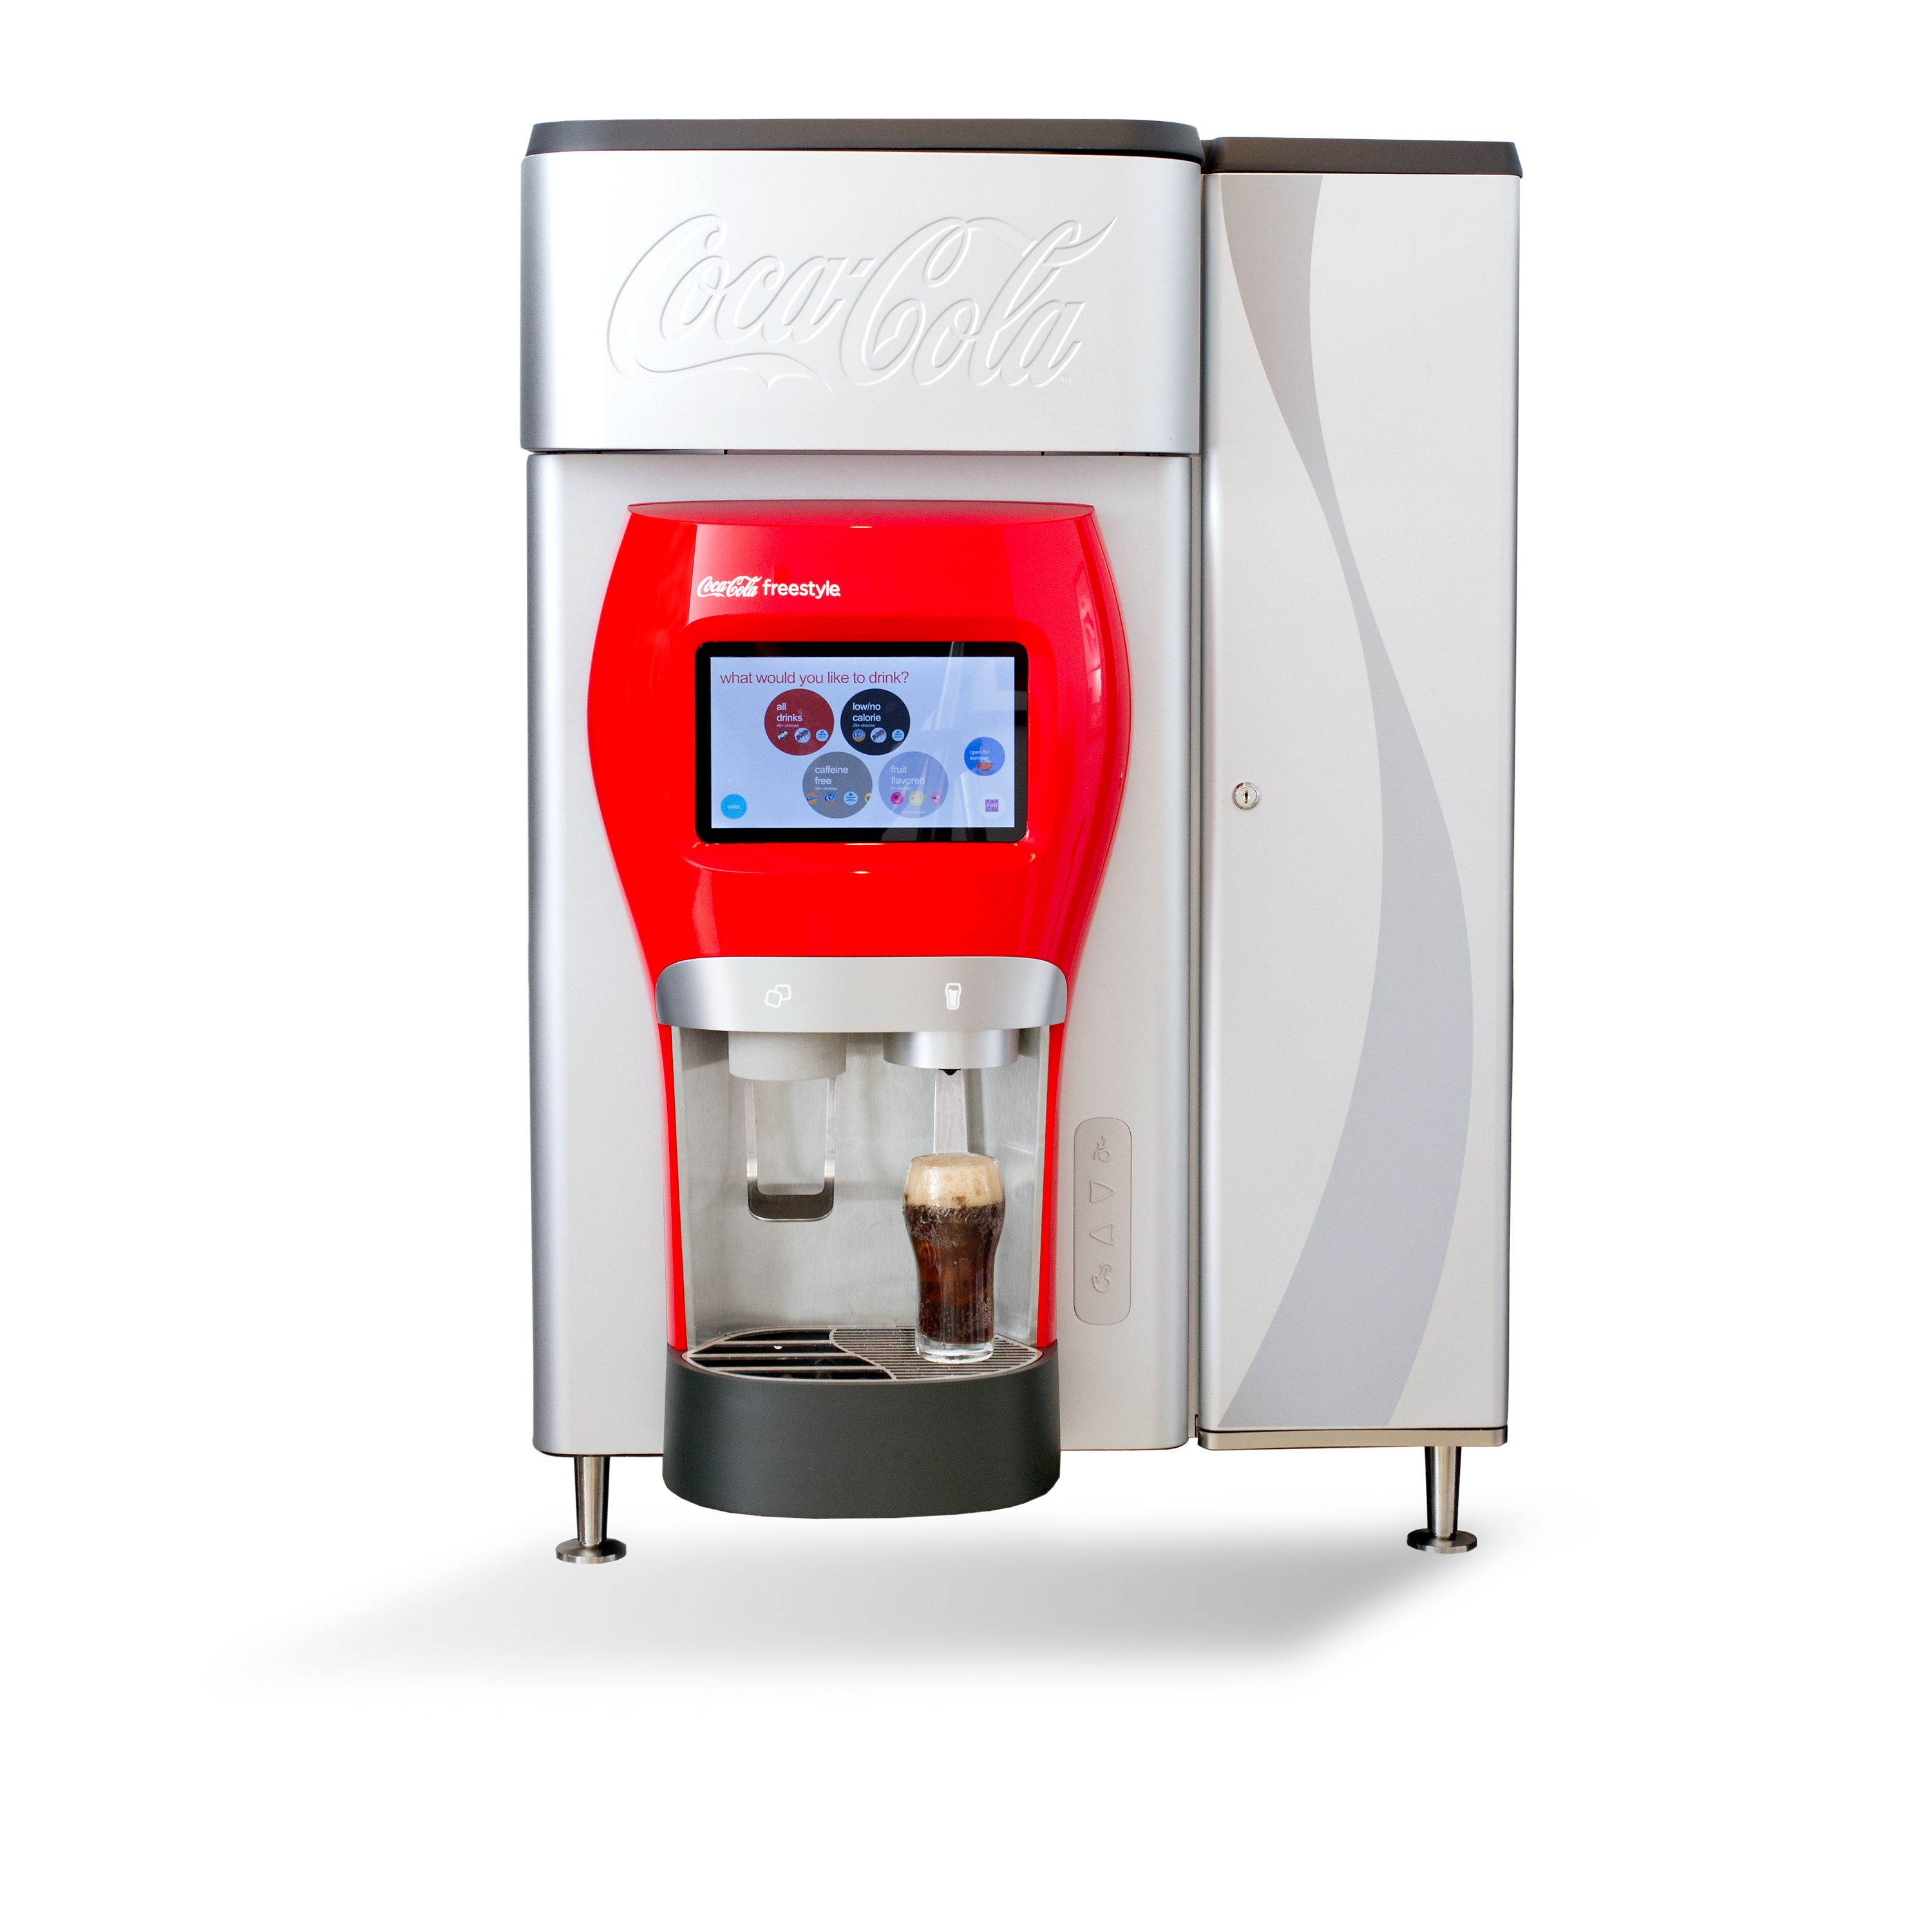 Coca-Cola Freestyle New Innovative Fountain Dispensers ...